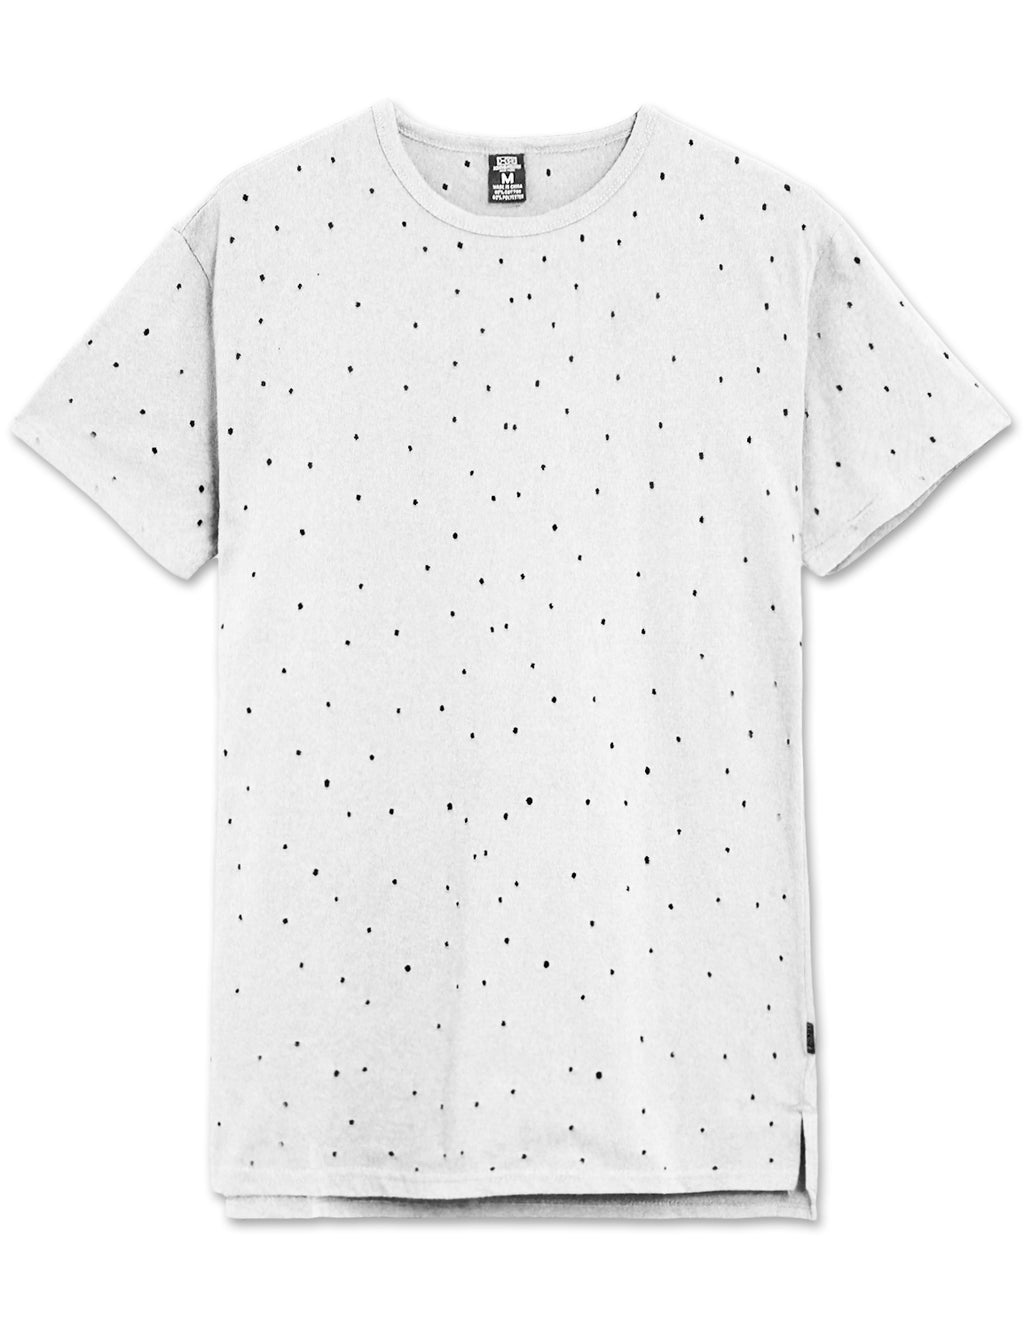 Hole Punched Distressed T-Shirt (5 Colors)